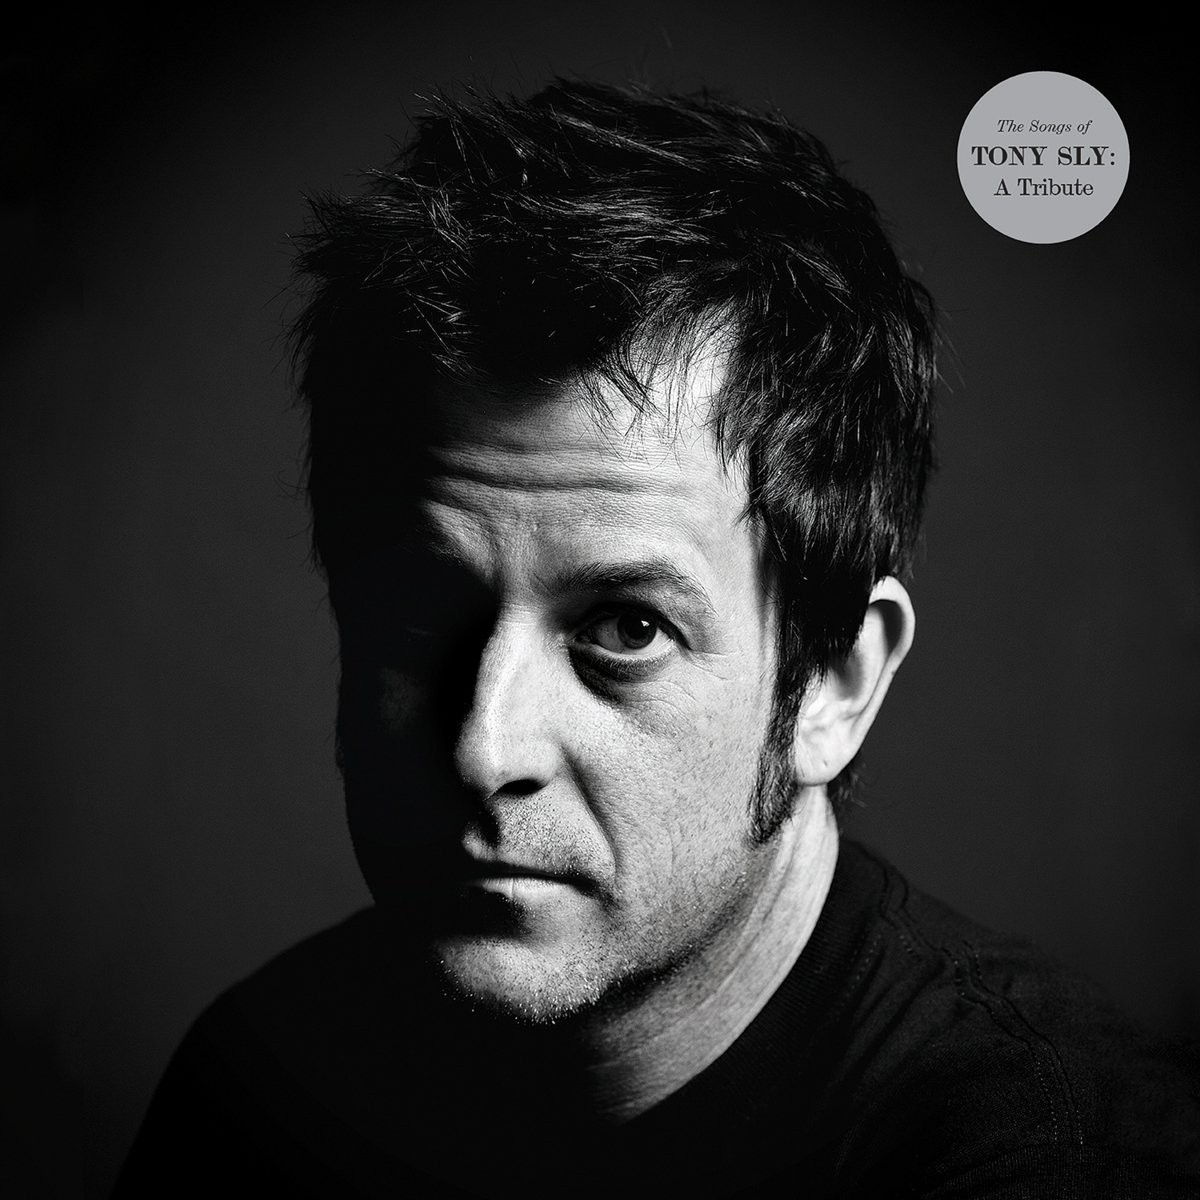 Various Artists - The Songs of Tony Sly: A Tribute 2XLP